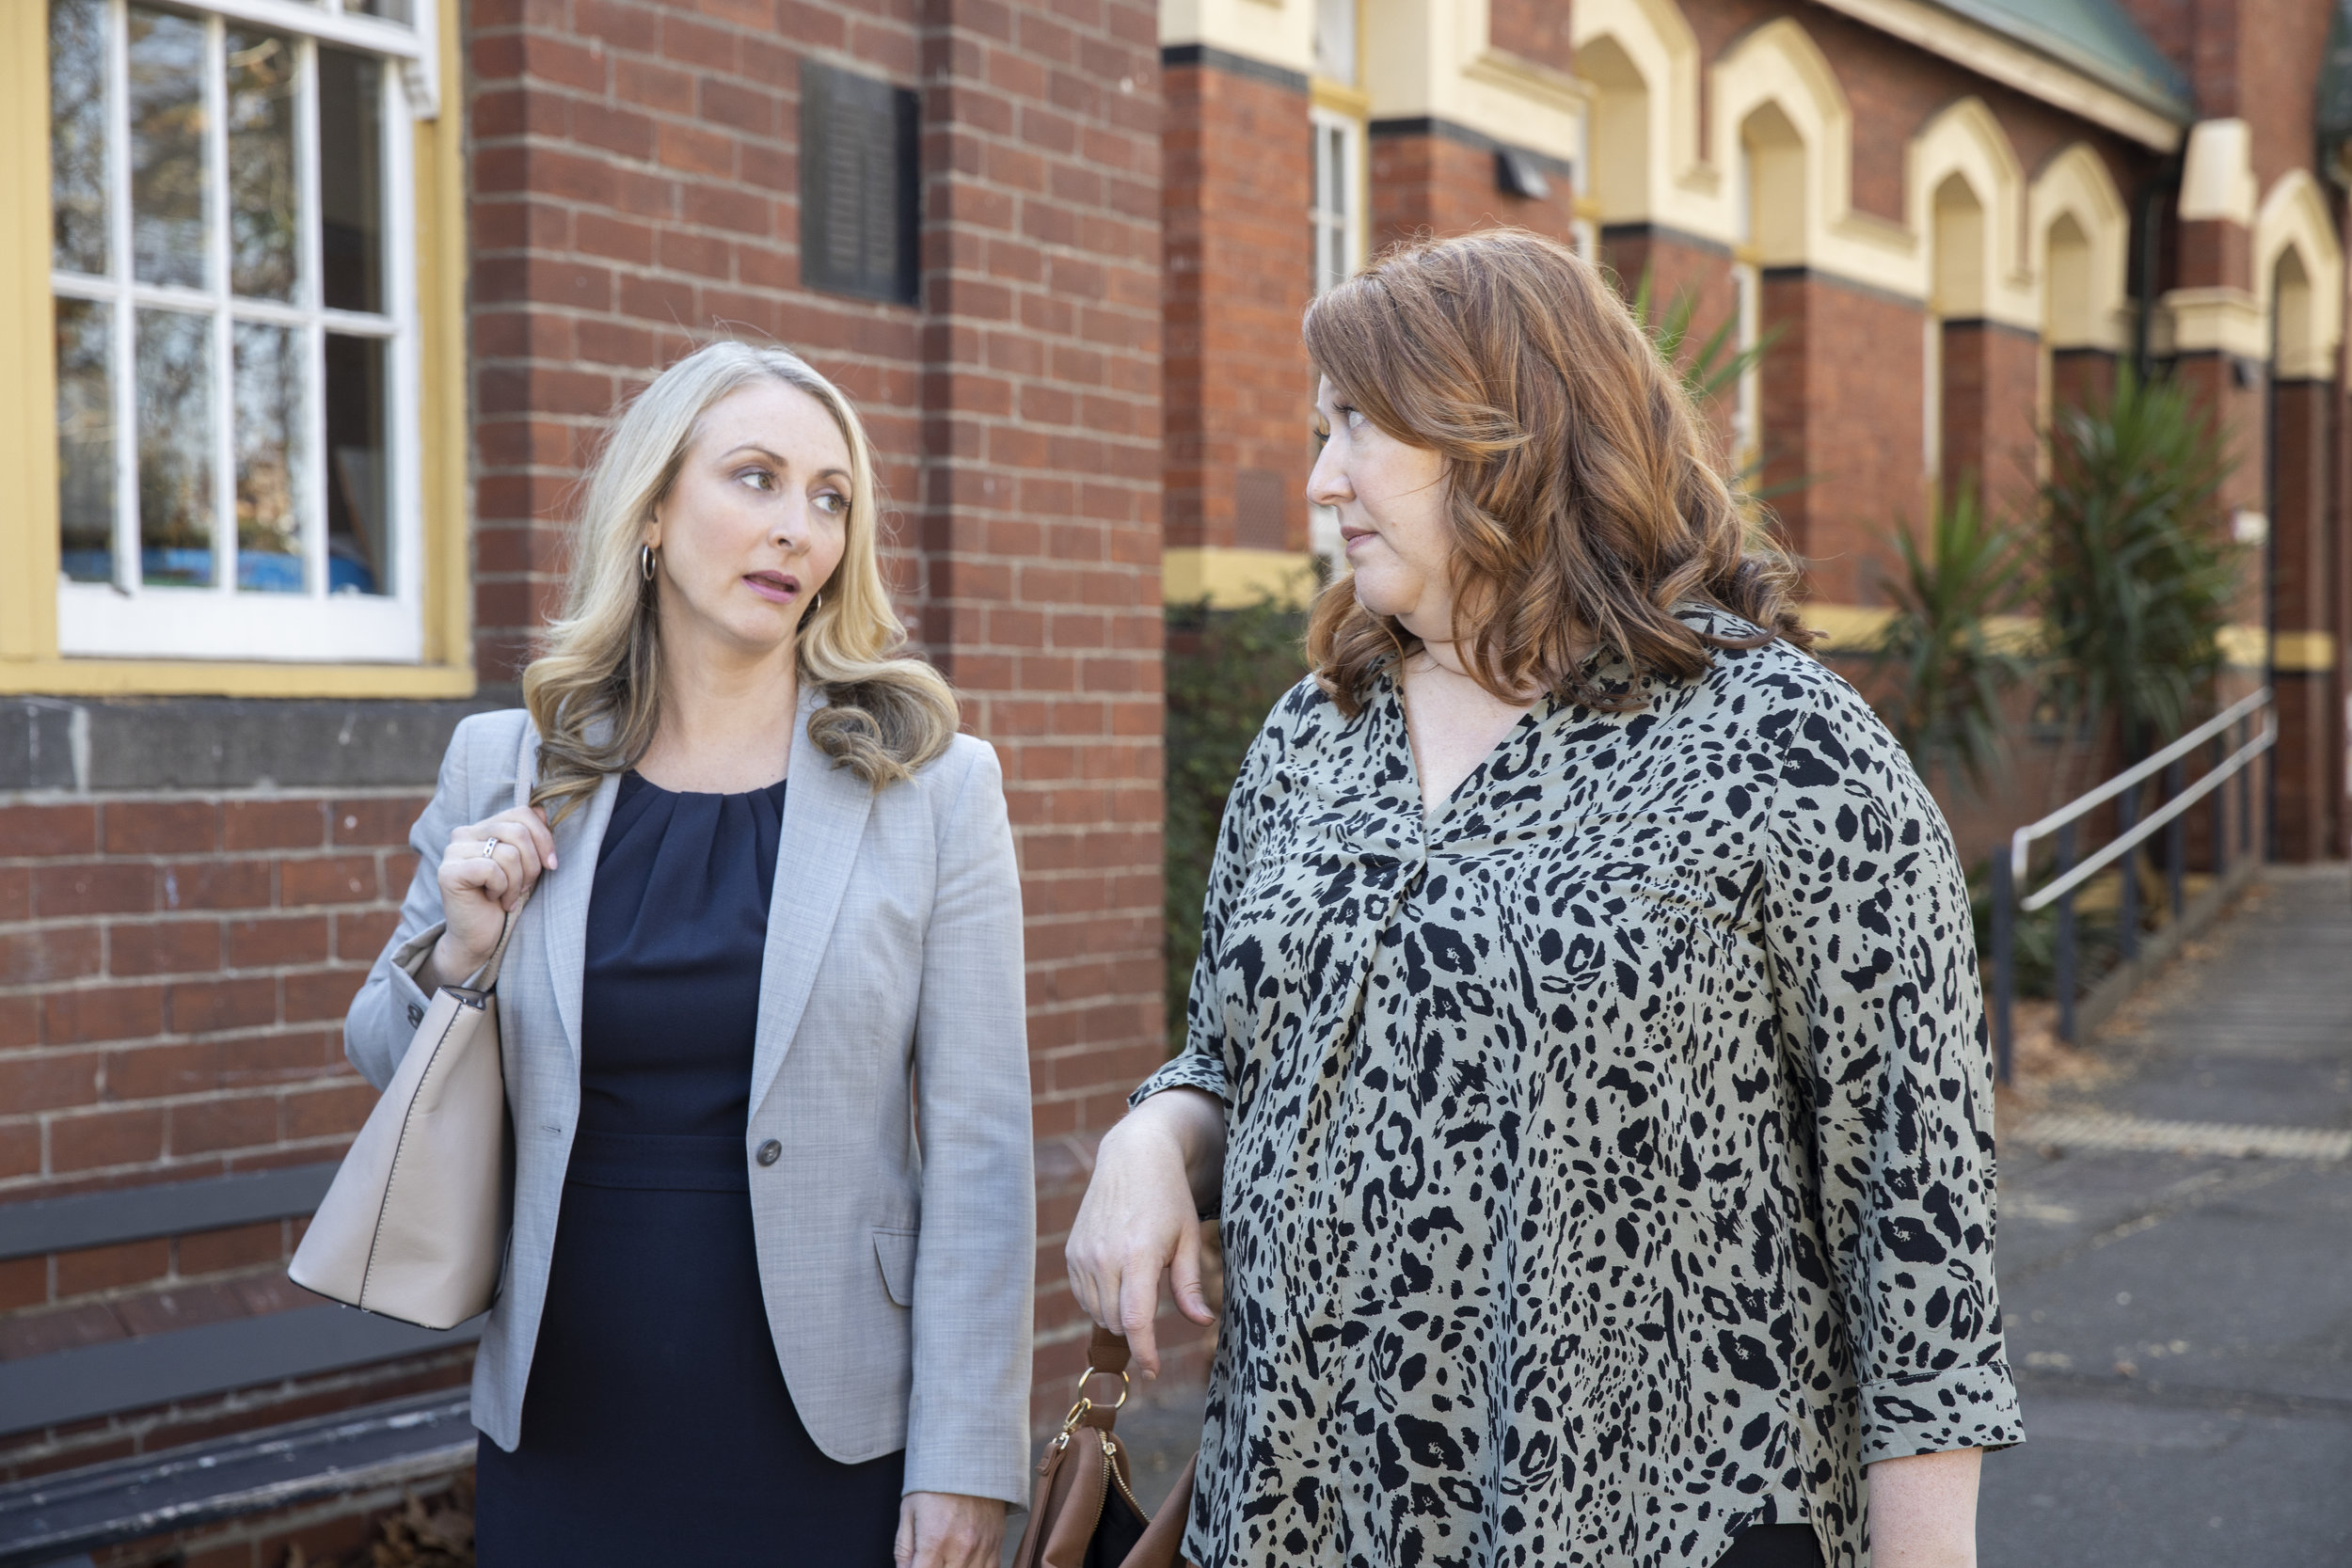 Alex (Nicola Parry) & Val (Heidi Arena) are PART-TIME PRIVATE EYES Image - 10